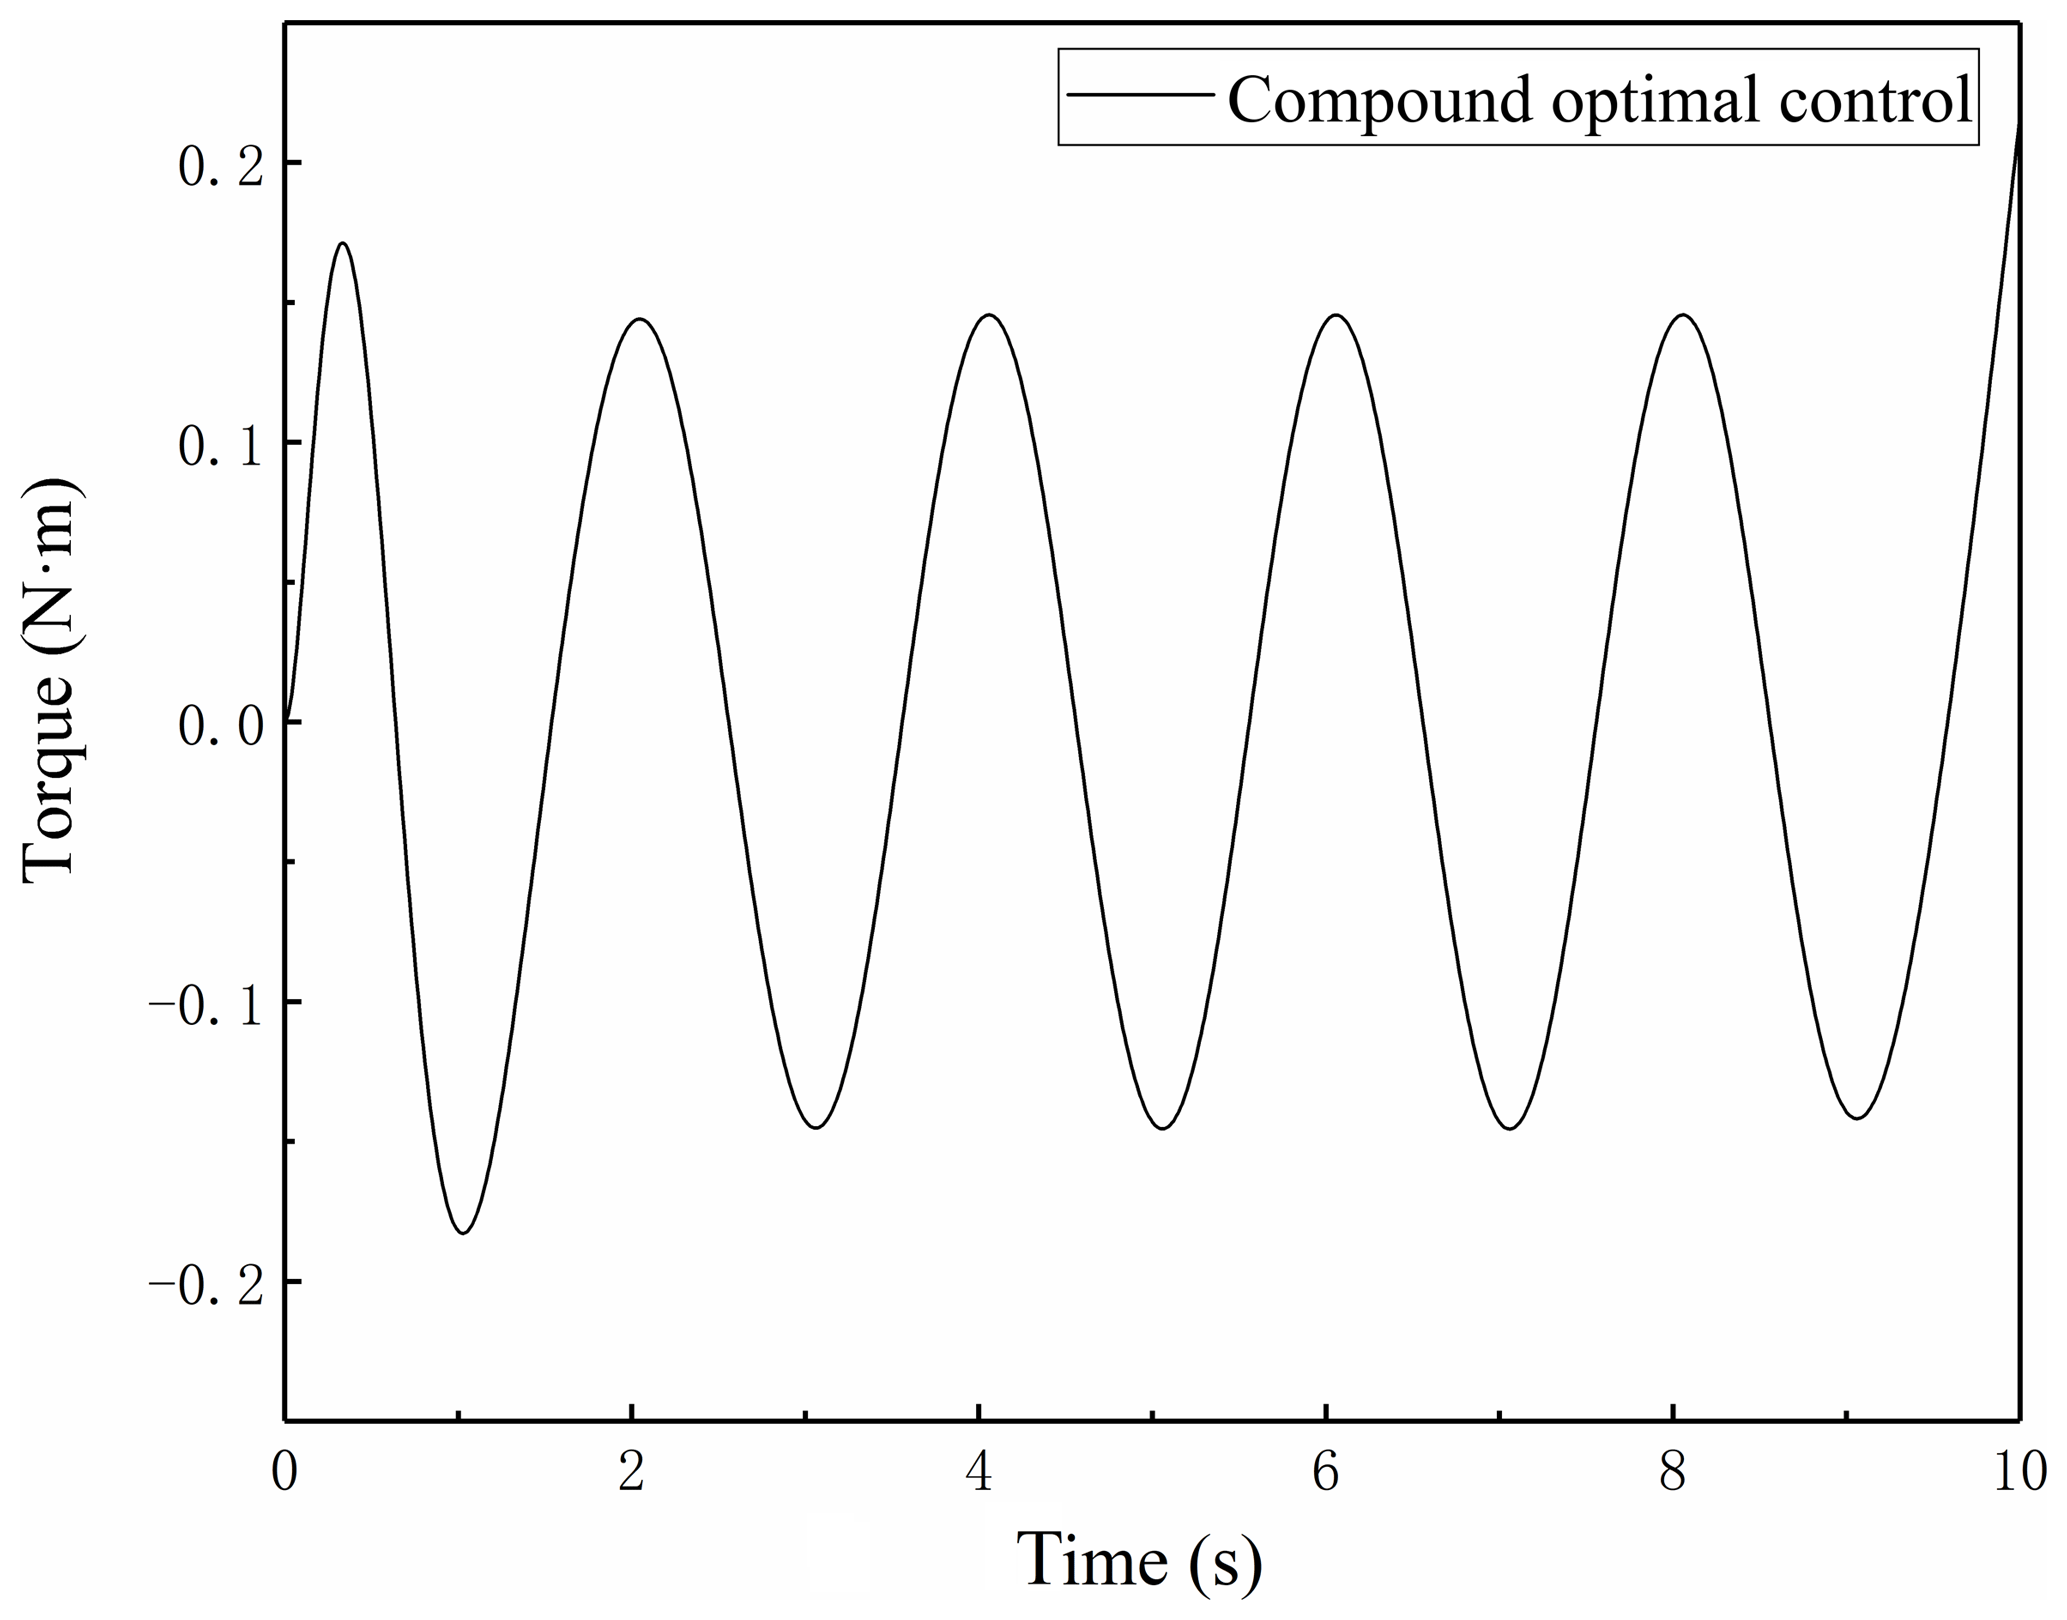 MS - Compound optimal control of harmonic drive considering